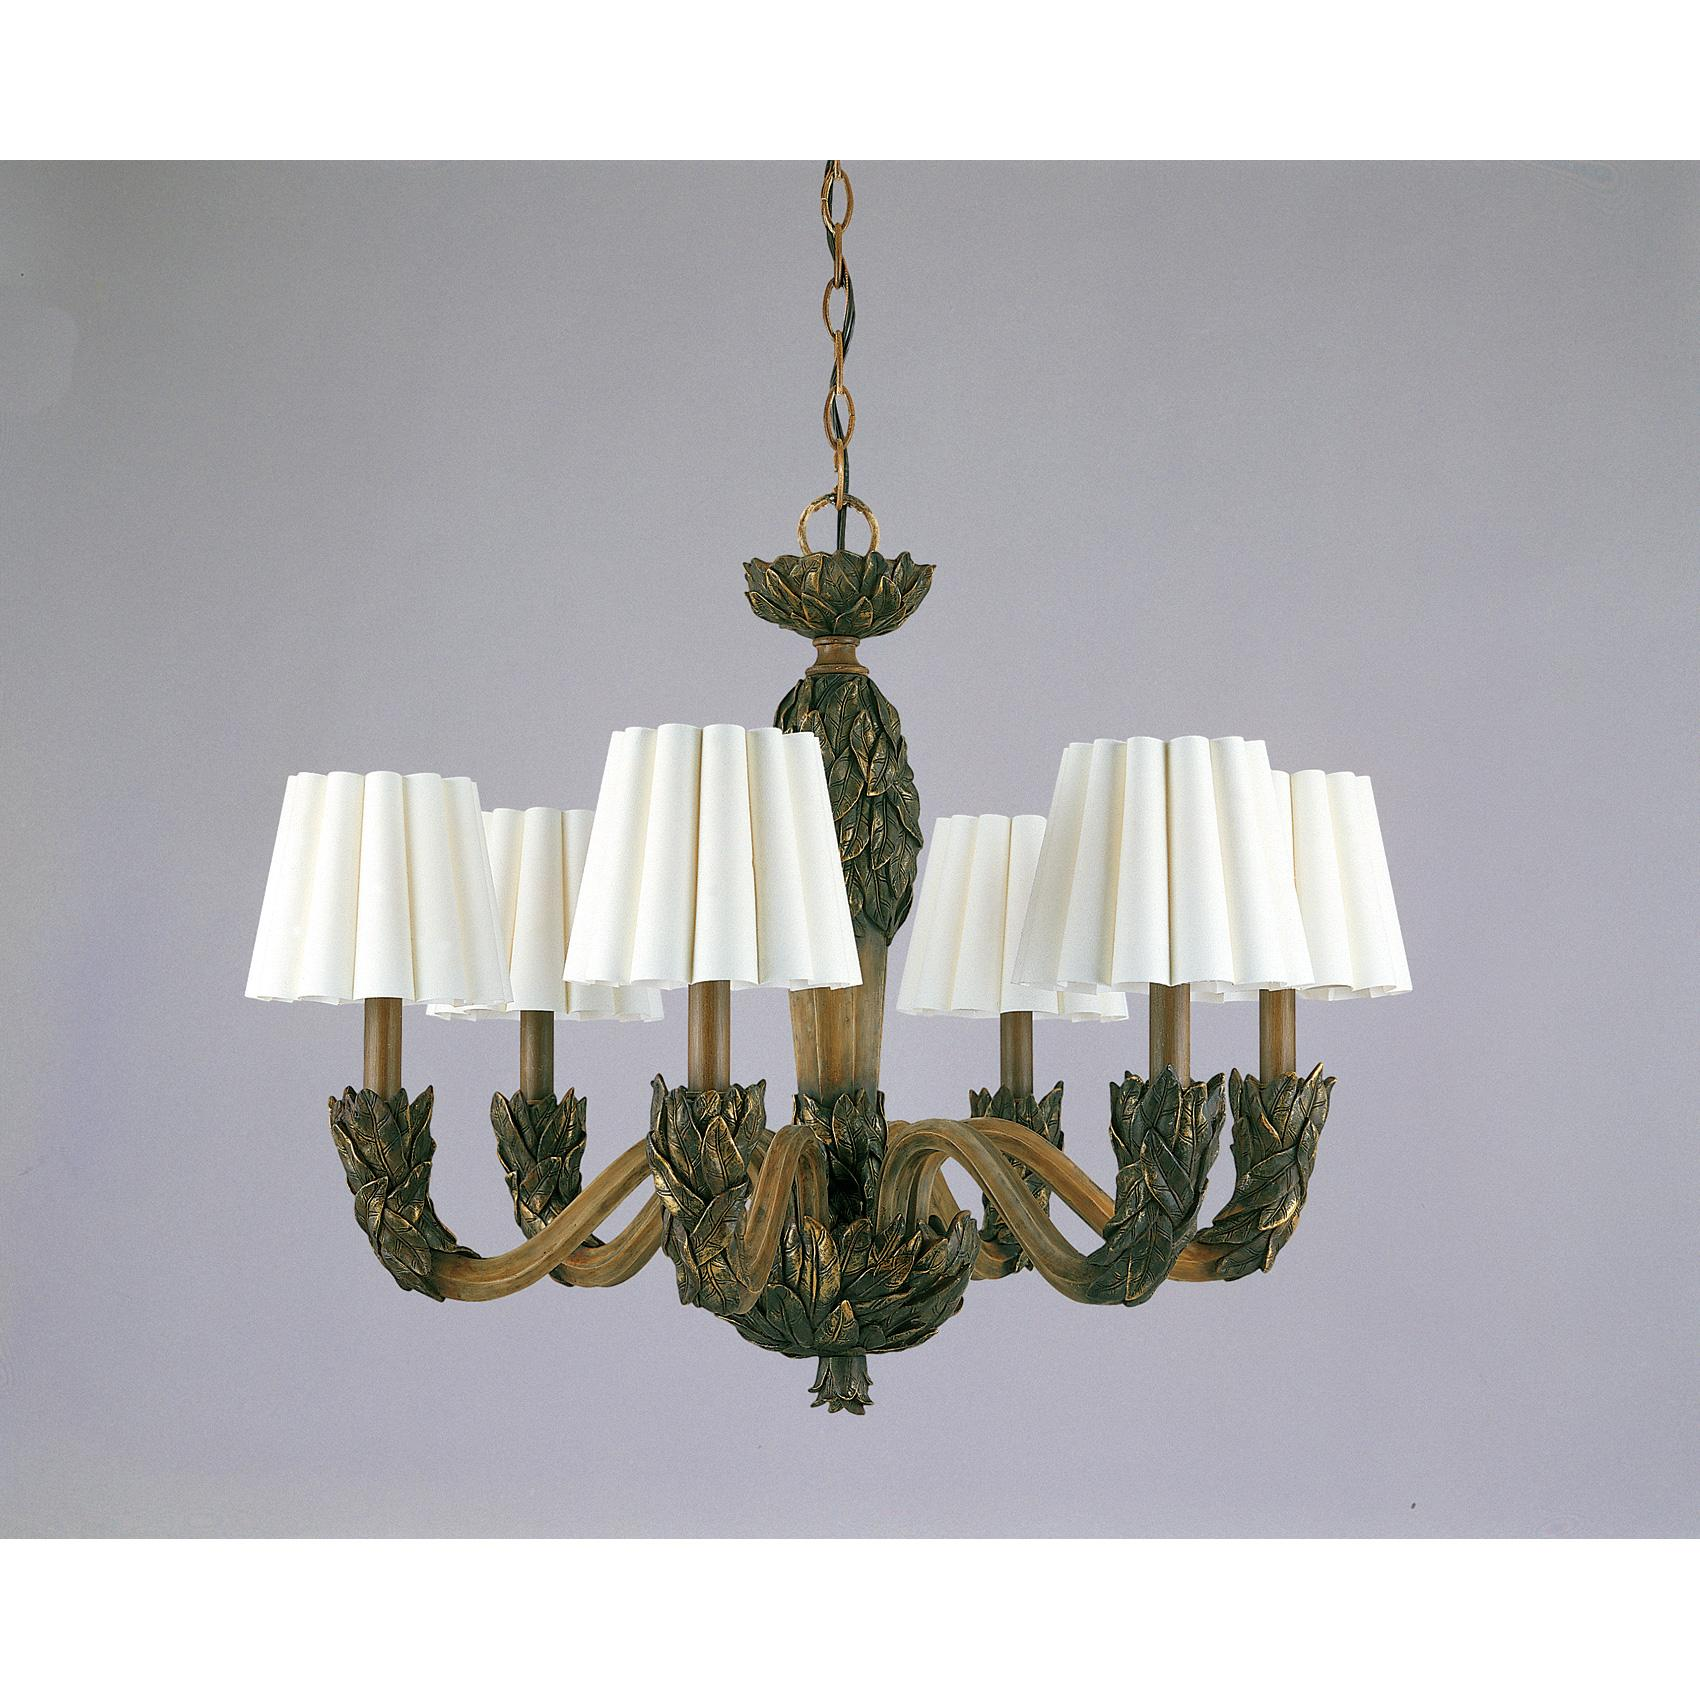 Tropica Collection 6-light Chandelier